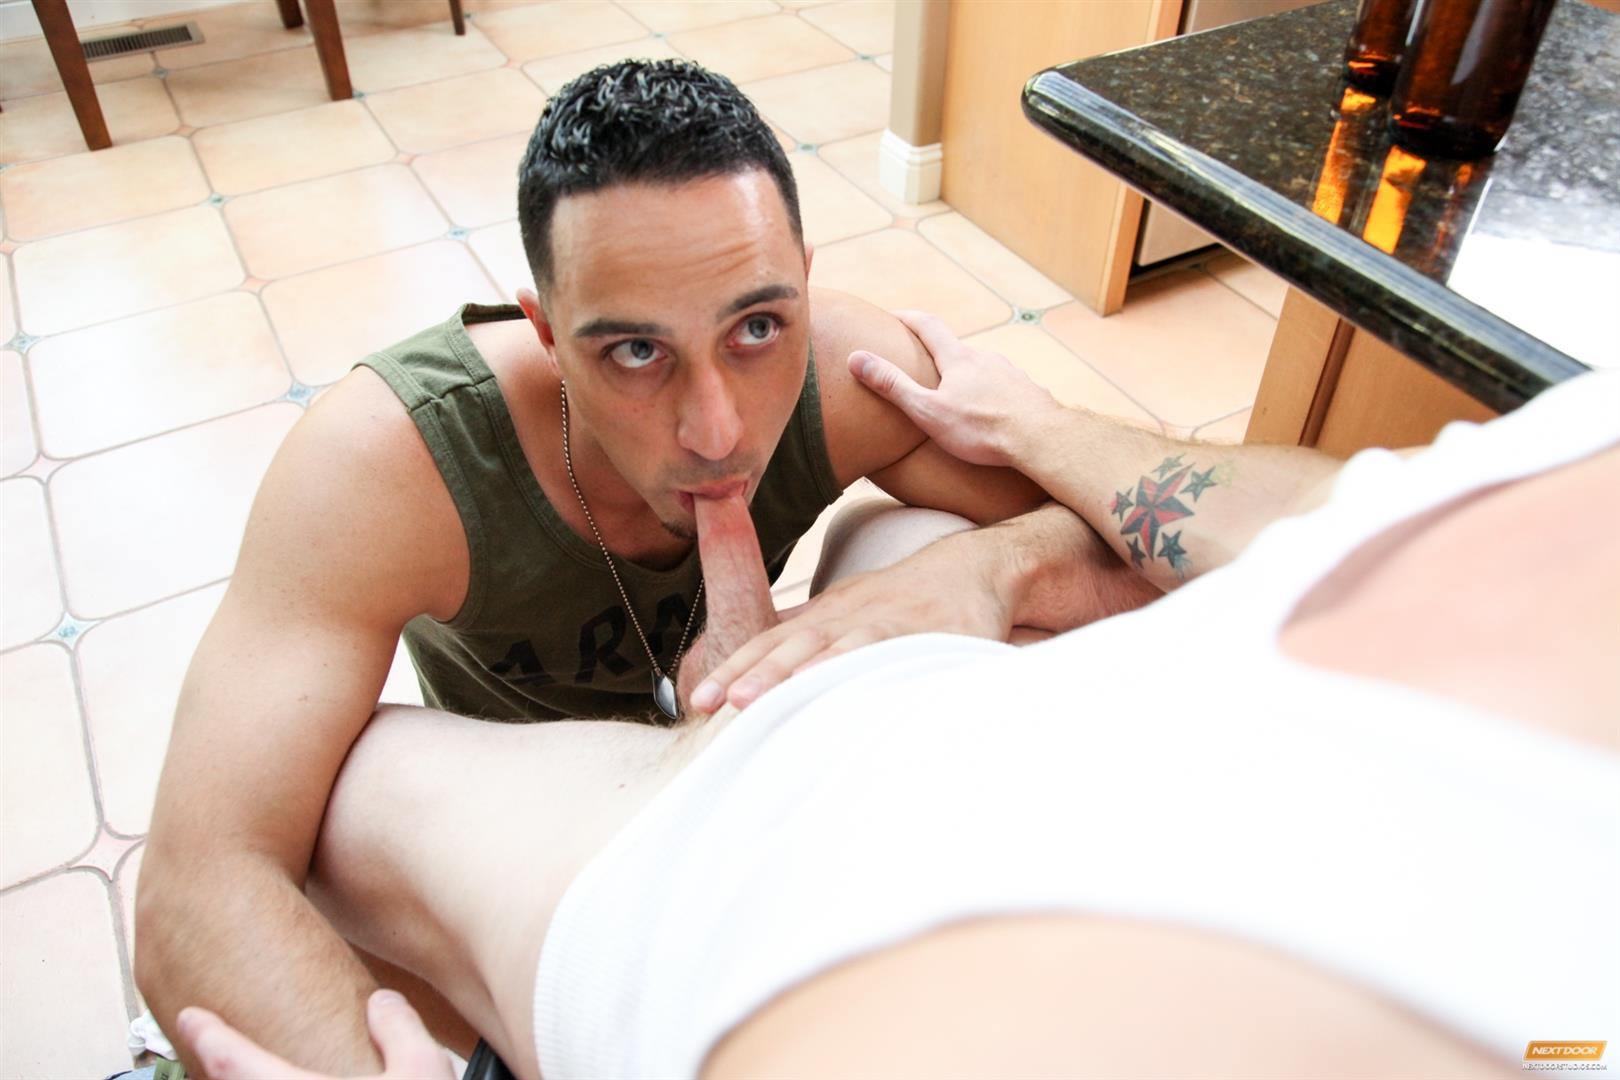 Next-Door-Buddy-Andrew-Fitch-and-Sean-Blue-Military-Army-Guy-With-A-Big-Cock-Fucking-Amateur-Gay-Porn-12 Hung Army Guy Returning From Duty Fucking His Buddy Hard